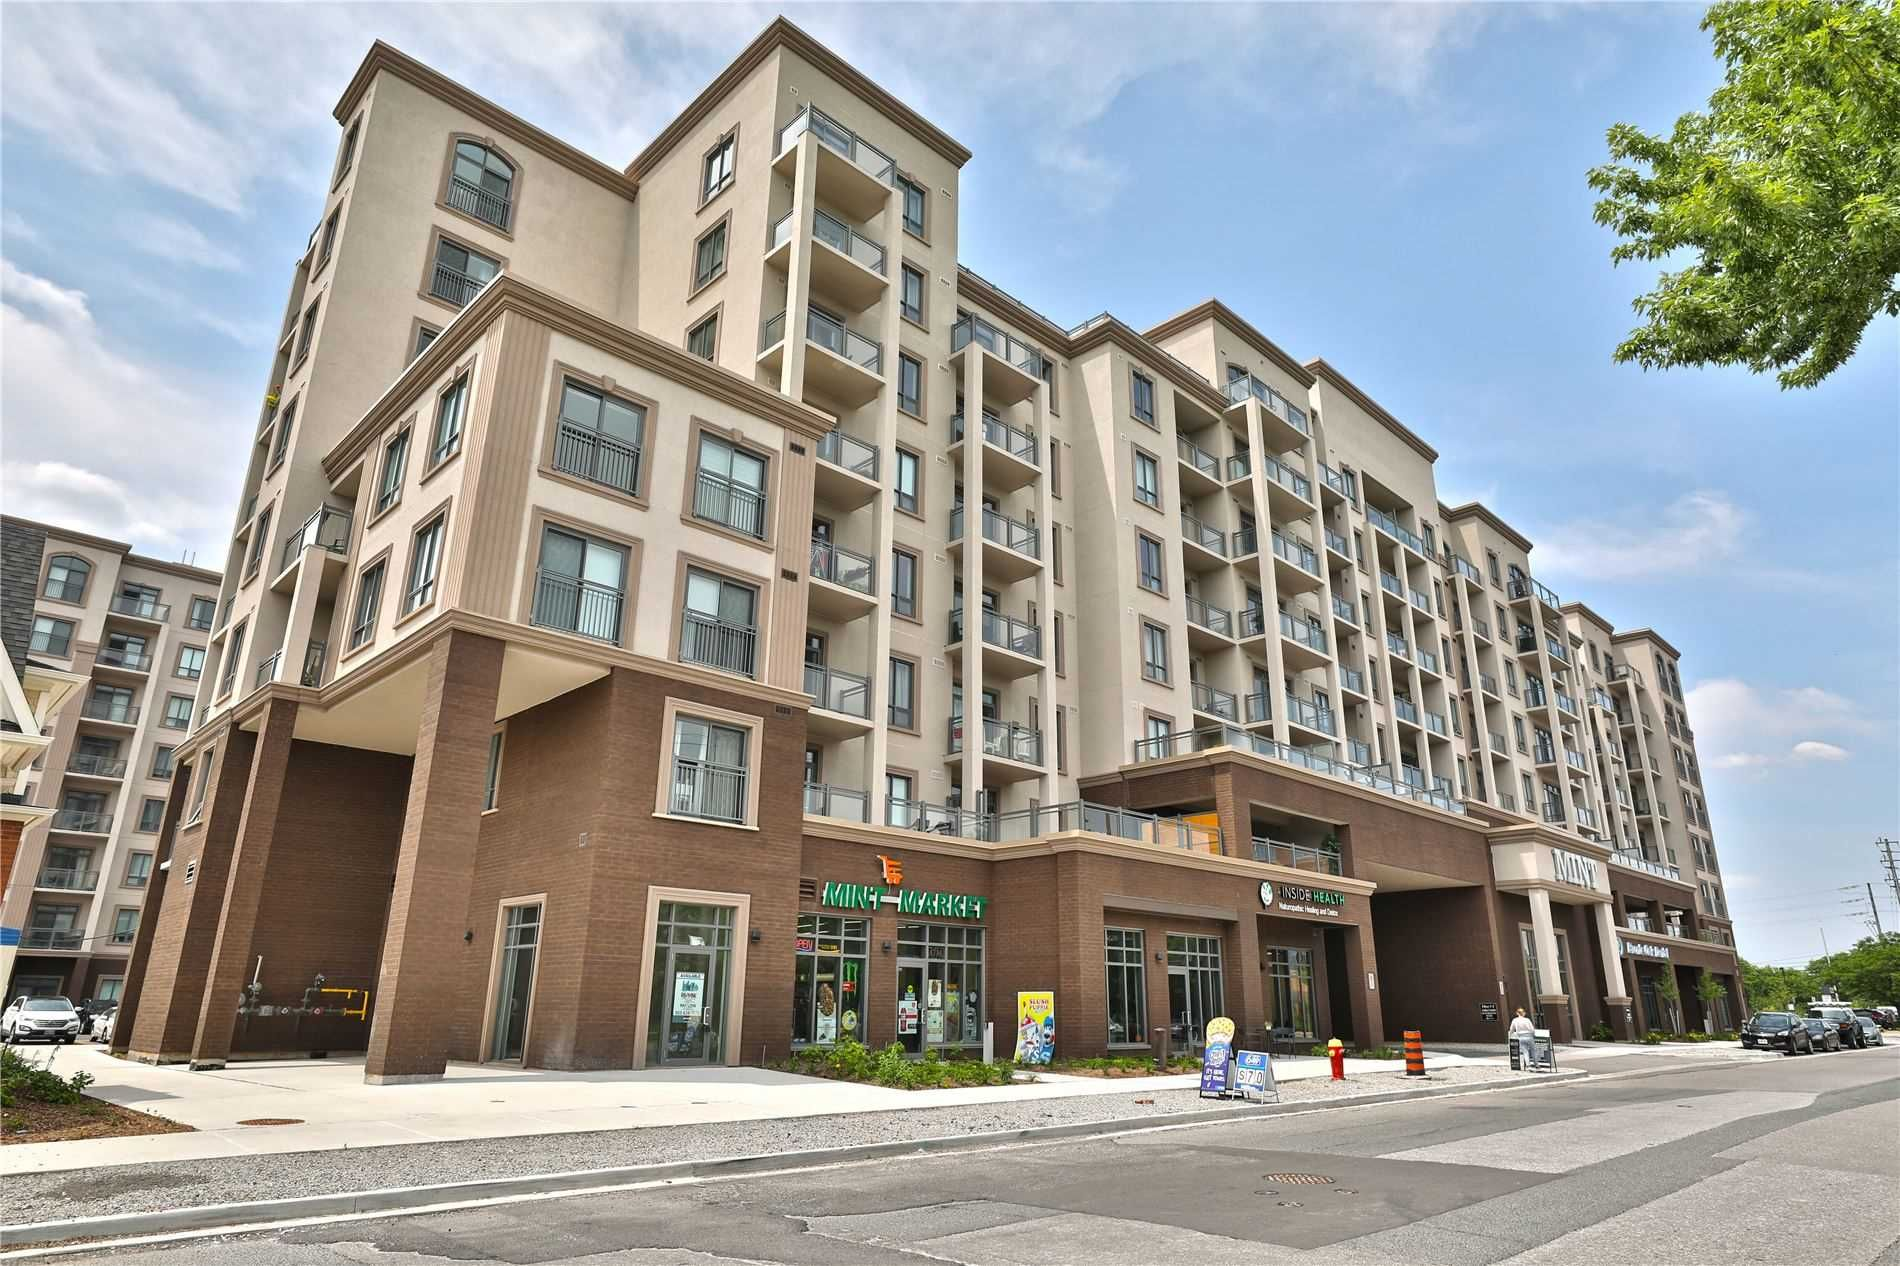 2486 Old Bronte Rd, unit 615 for sale in Toronto - image #2